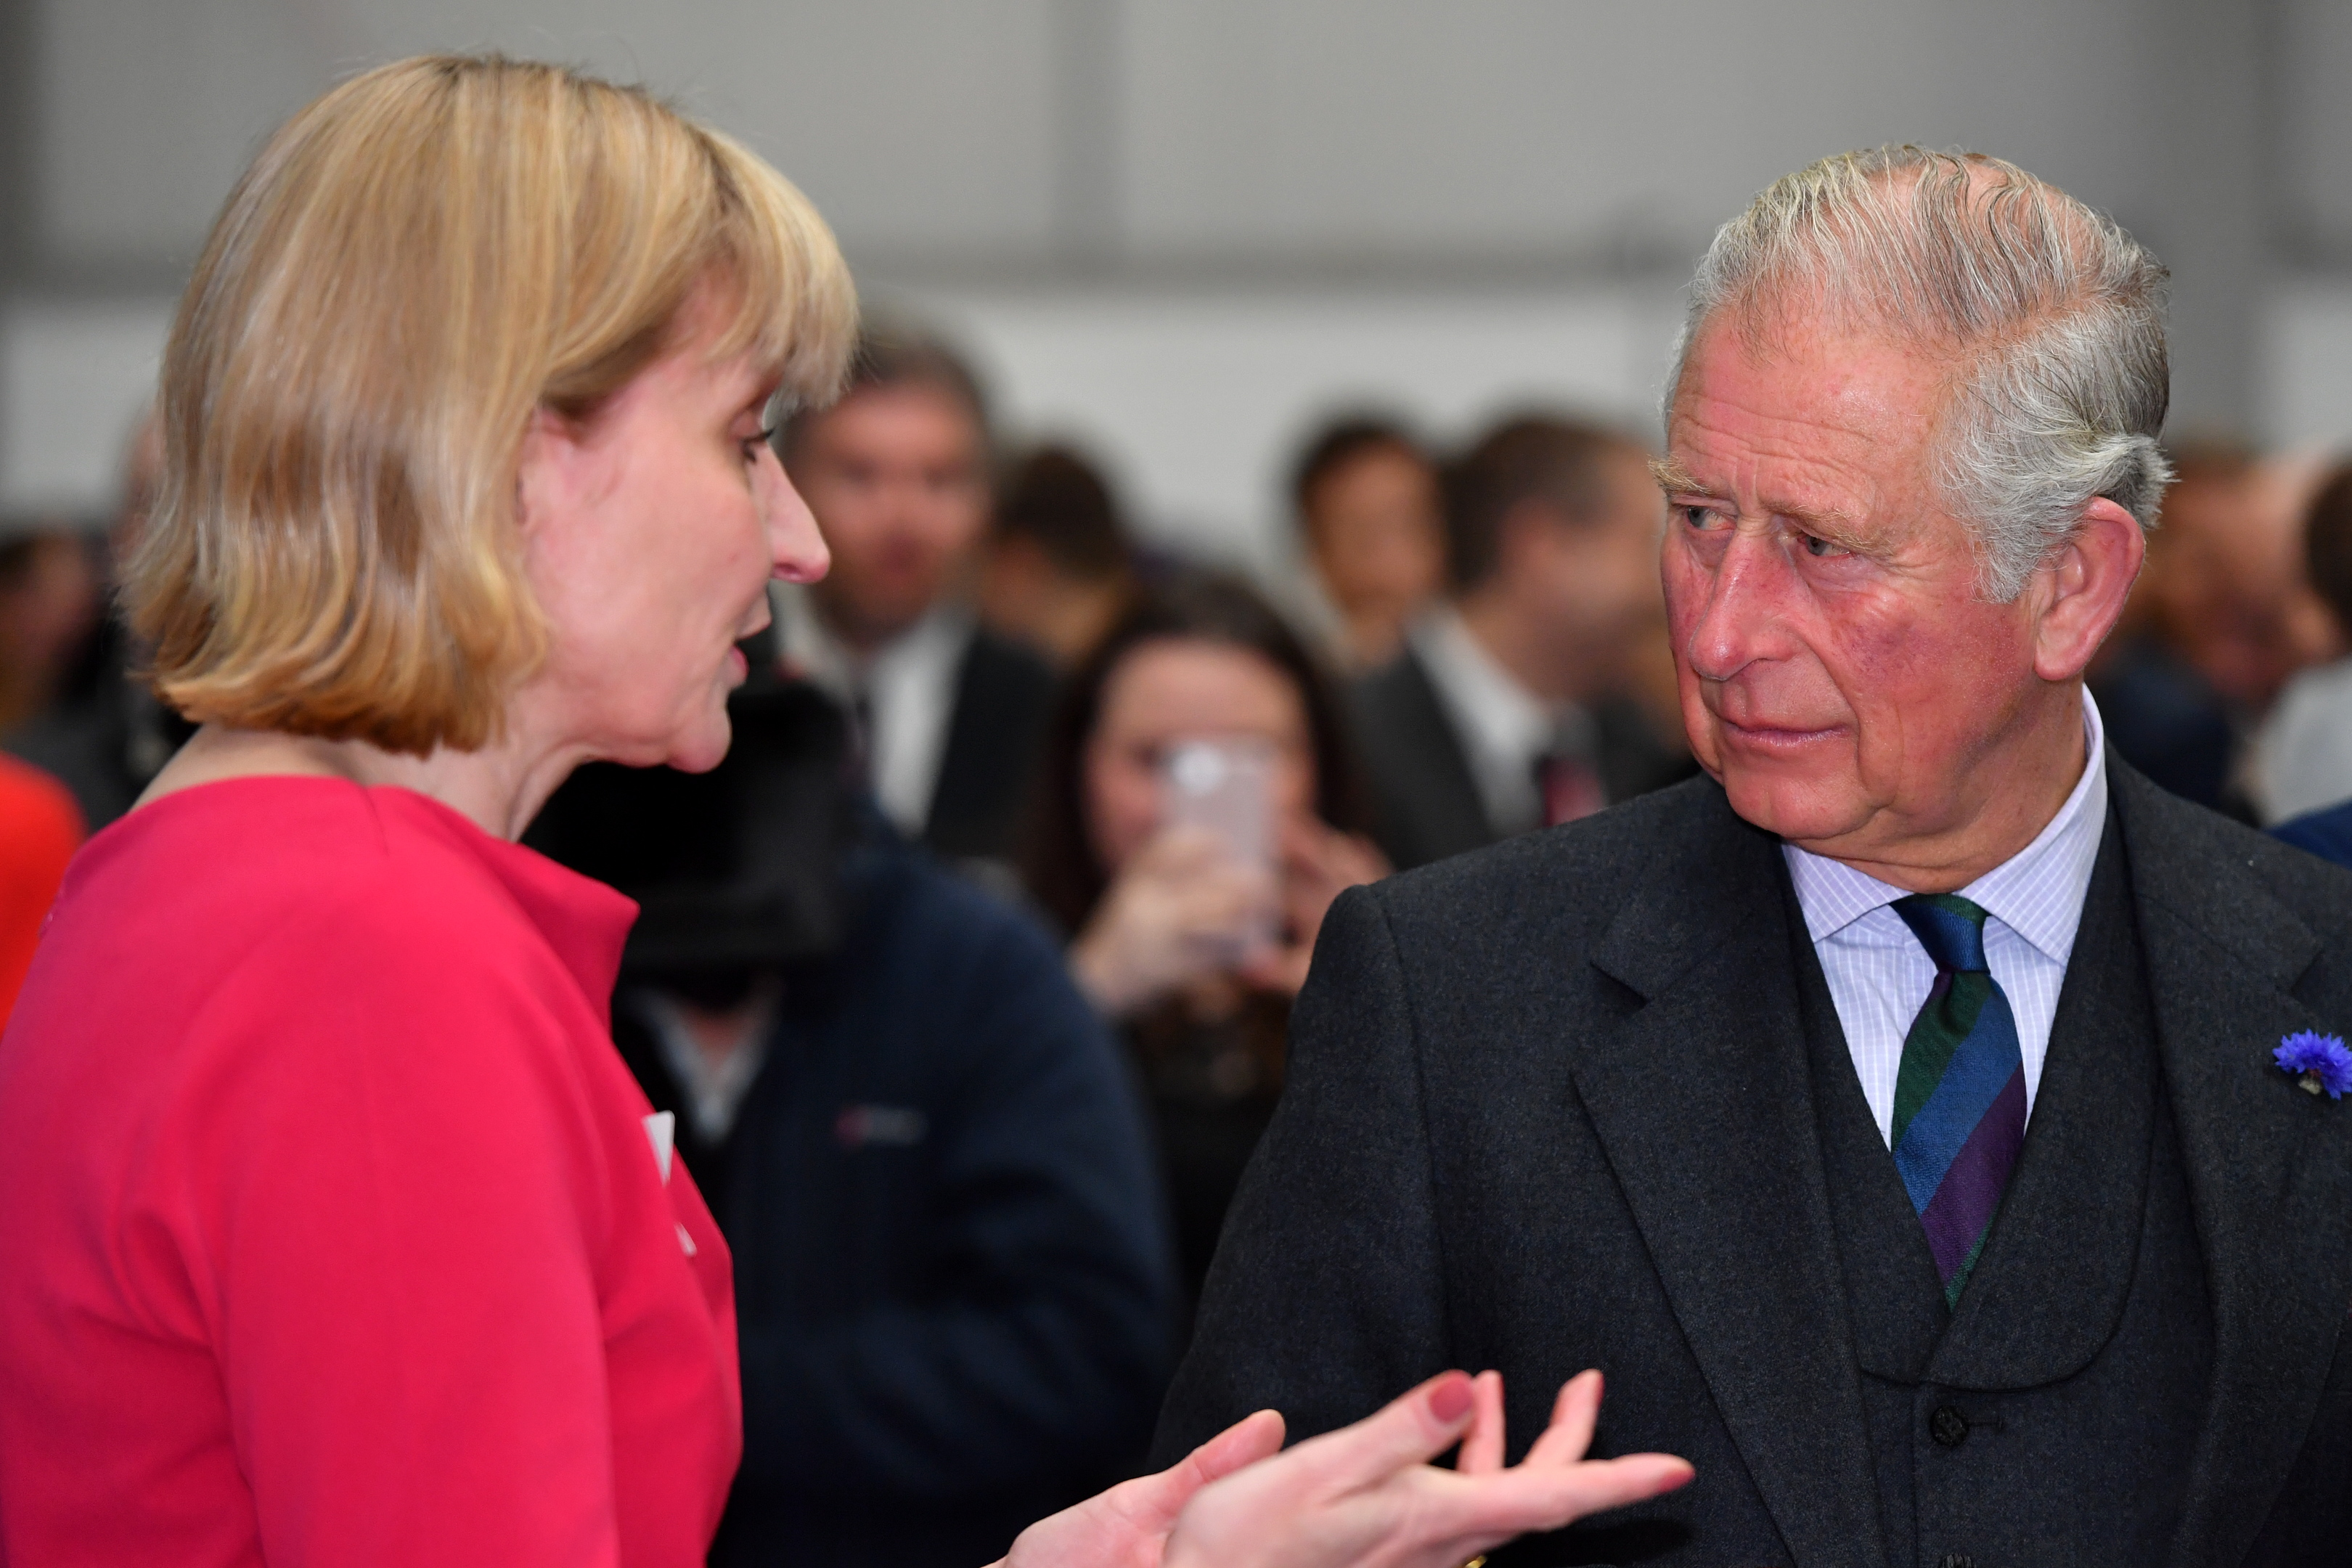 HRH Prince Charles, The Duke of Rothesay, visited Balmoral Offshore Engineering, Aberdeen to officially open the new Balmoral Subsea Test Centre.  Pictured - Prince Charles, speaking with Deirdre Michie of Oil & Gas UK.  Picture by Kami Thomson